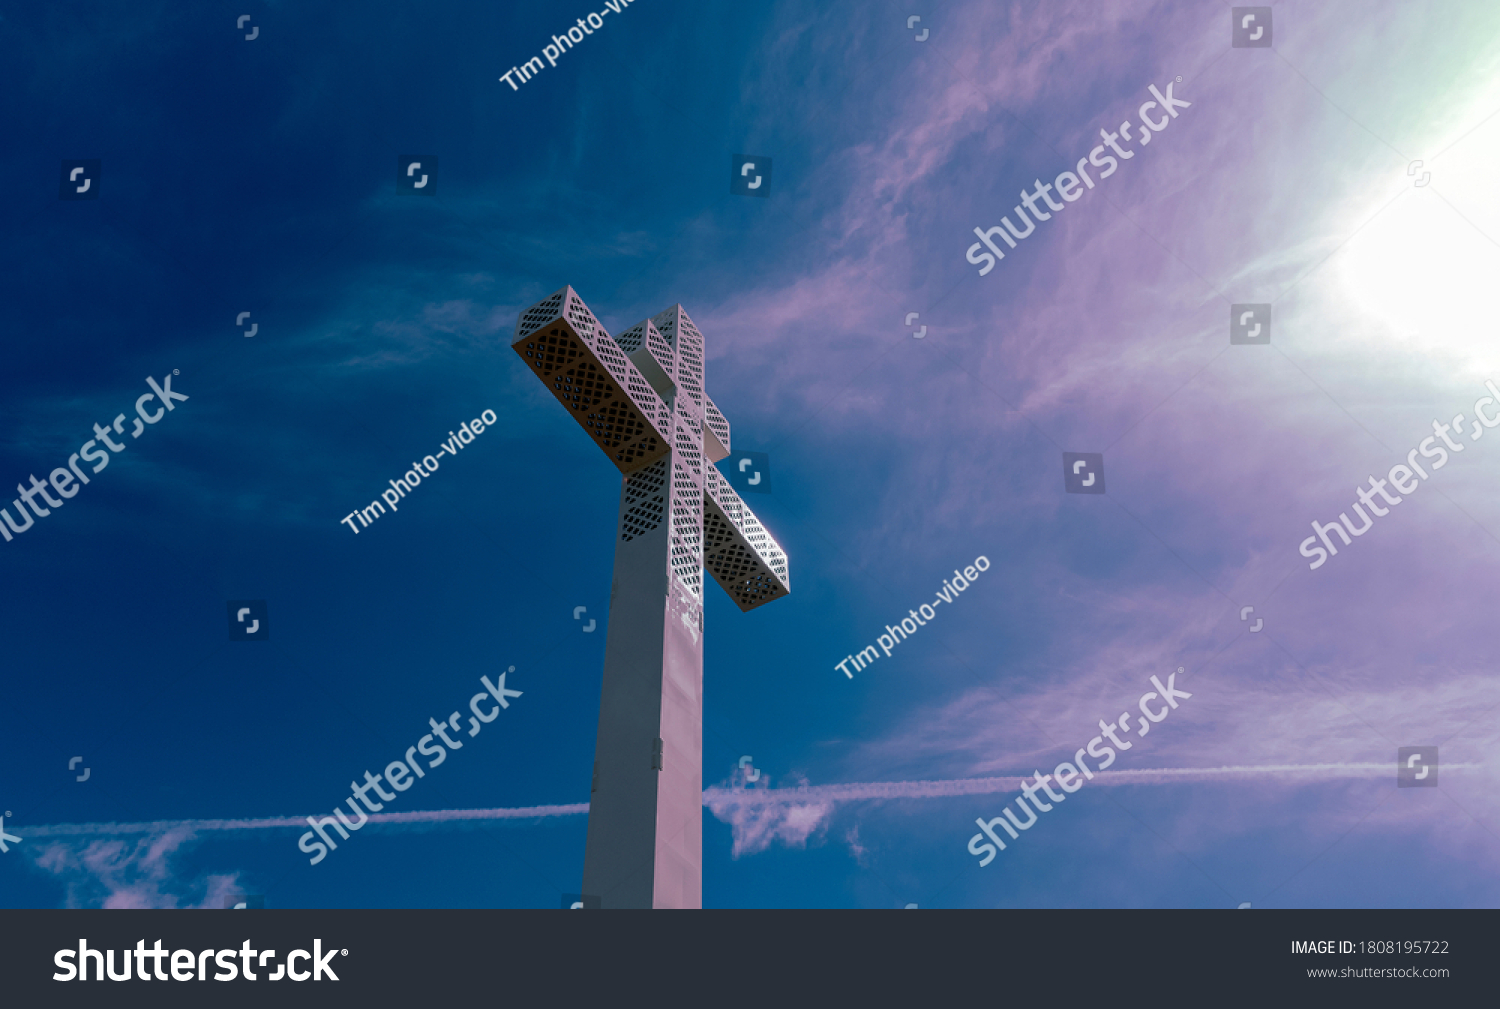 stock-photo-cross-of-lorraine-is-a-heral